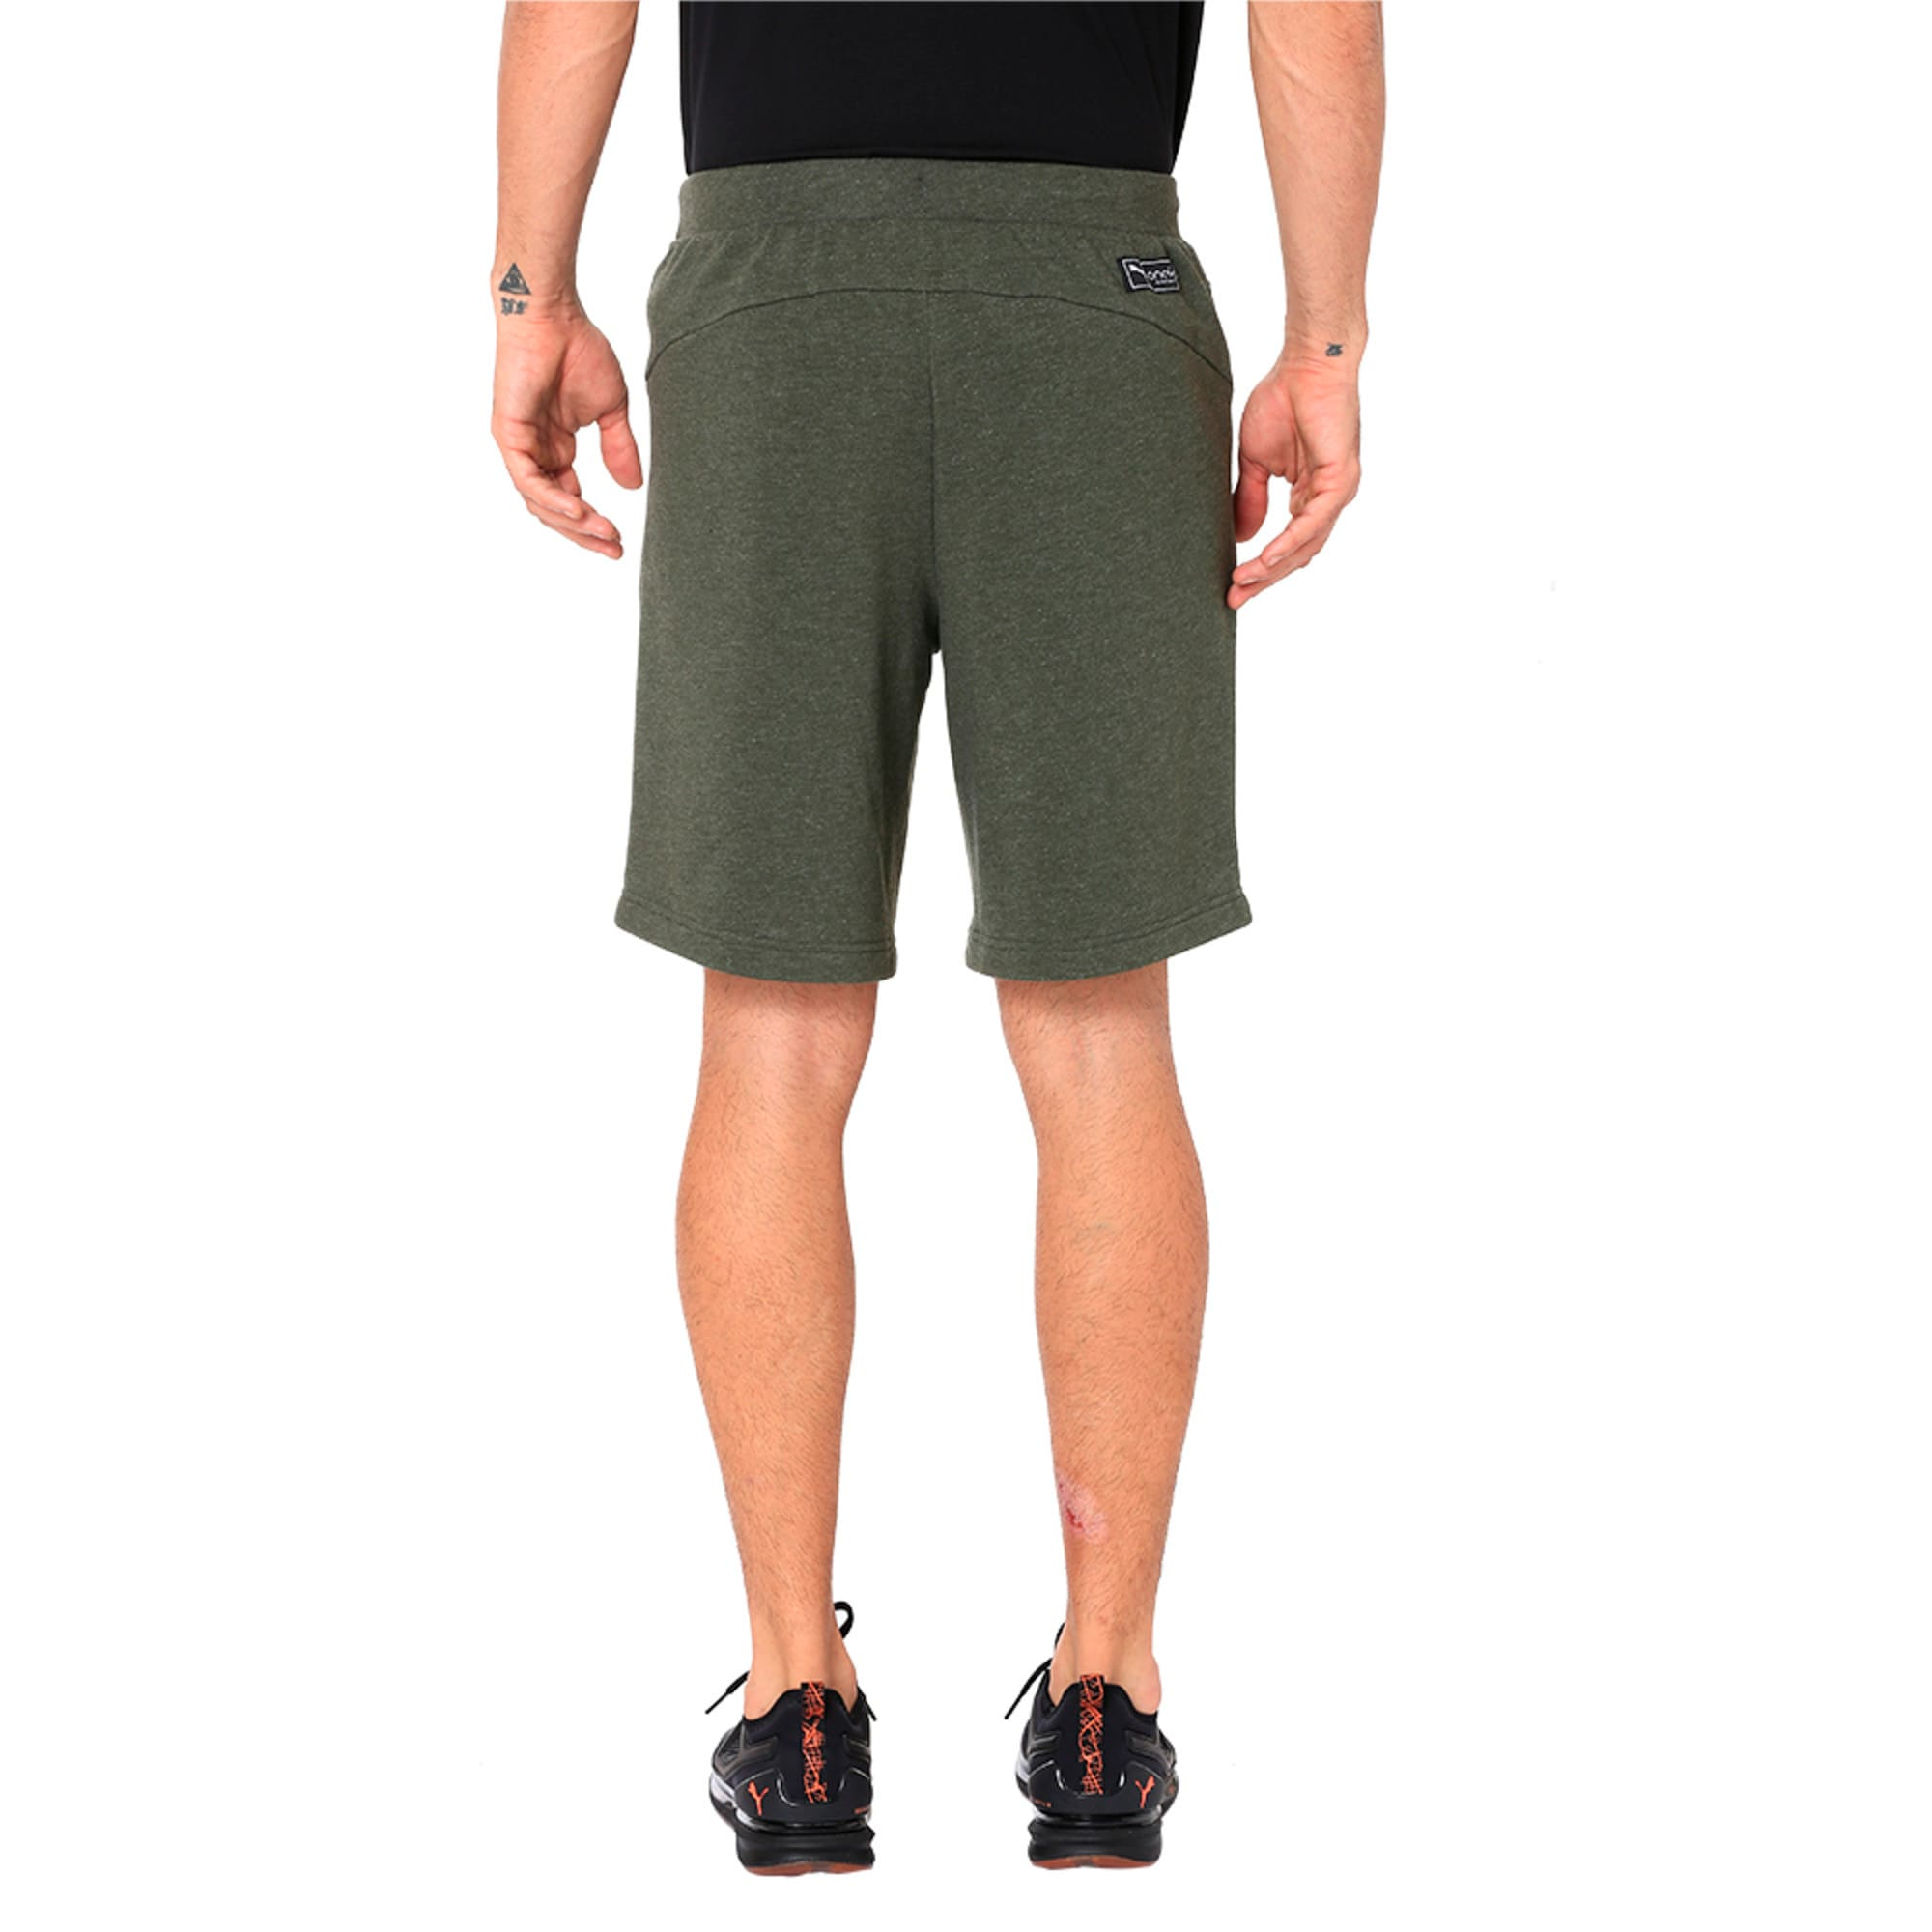 Thumbnail 2 of One8 VK Men's Sweat Shorts, Forest Night Heather, medium-IND